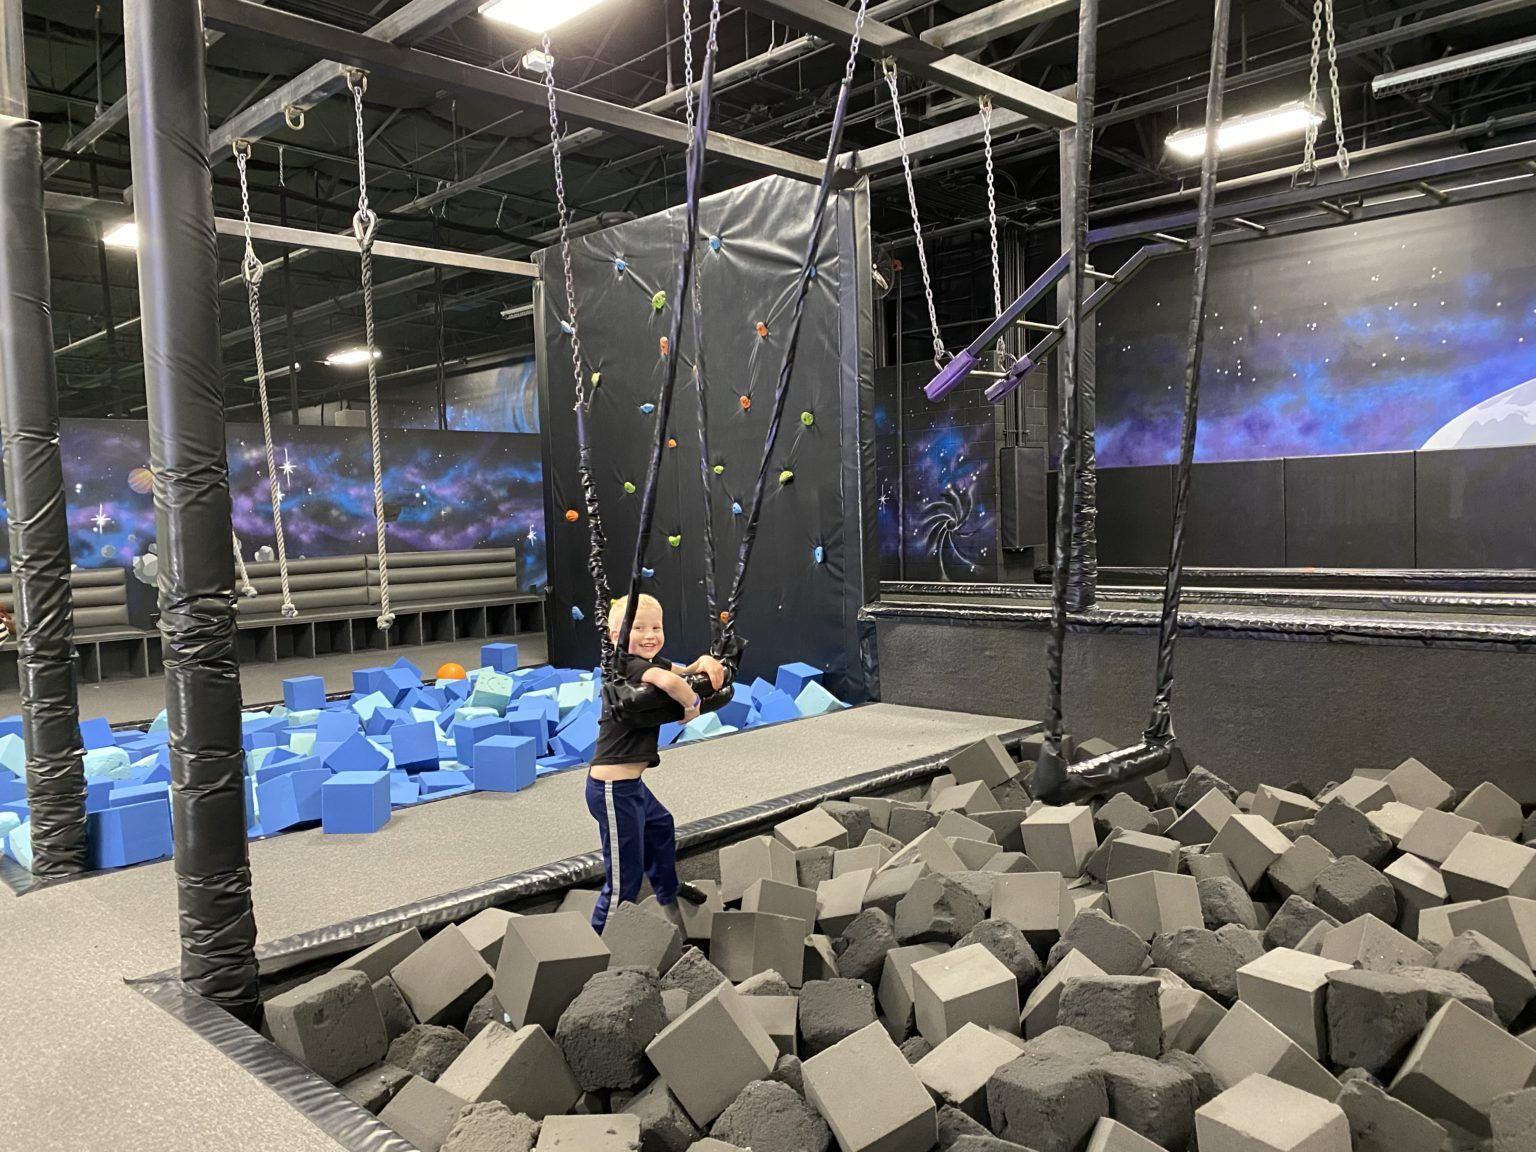 Elevate Trampoline Park In Goodyear Phoenix With Kids In 2020 Trampoline Park Phoenix With Kids Trampoline